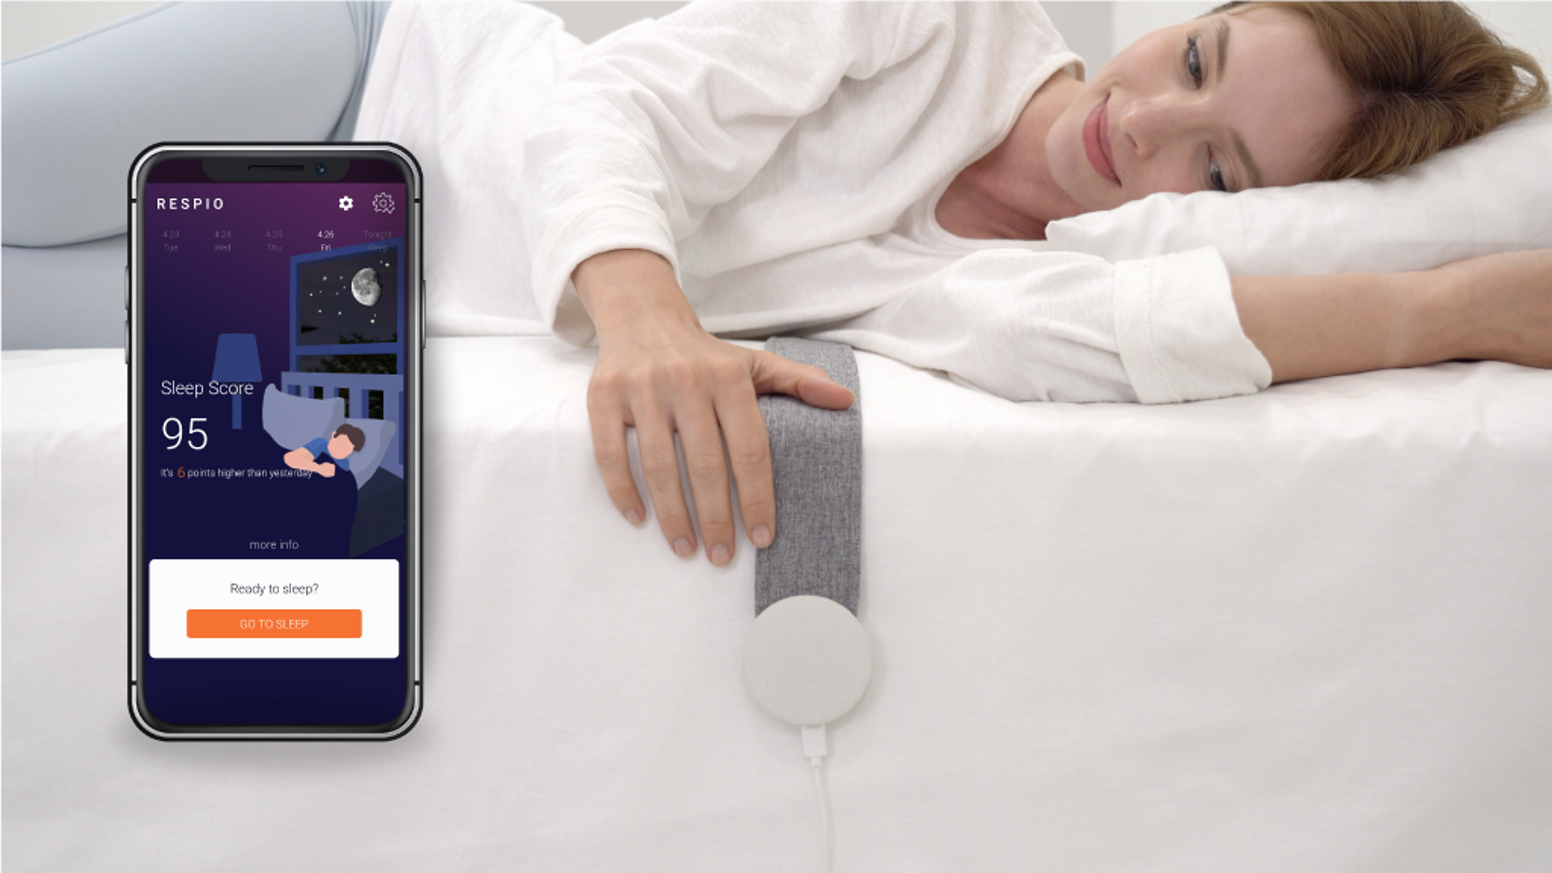 Free yourself from Sleep Debt with Repsio Sleep Coach that helps improve your sleep quality, breathing patterns and sleep environment